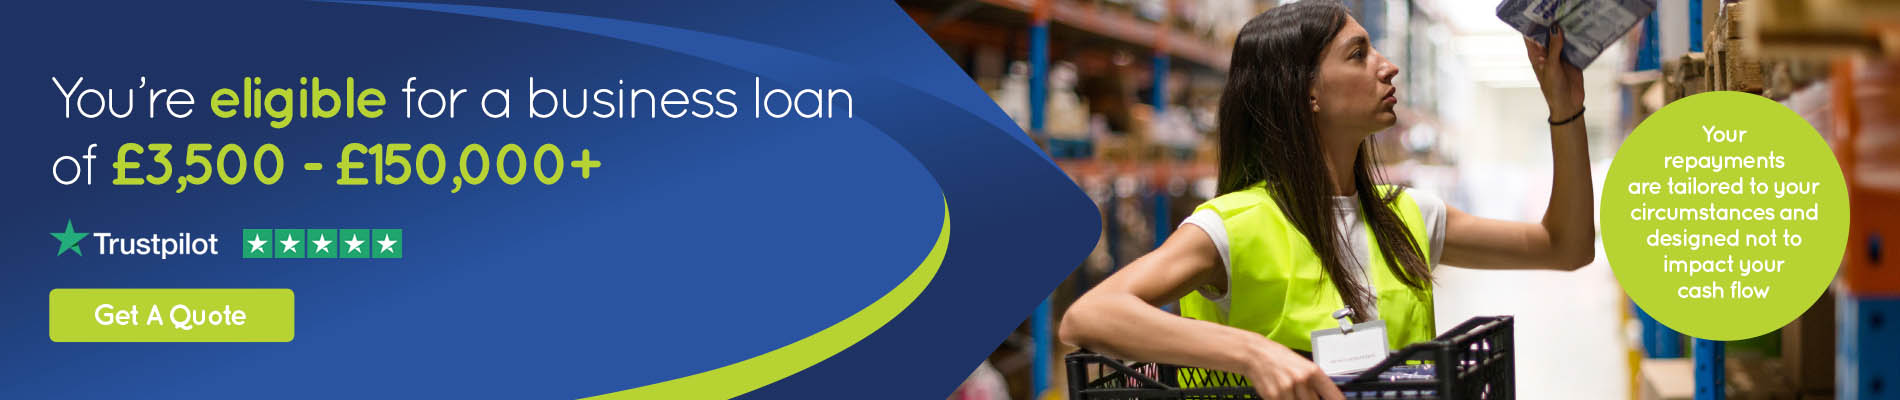 Finally, an alternative business loan that's quick and easy.